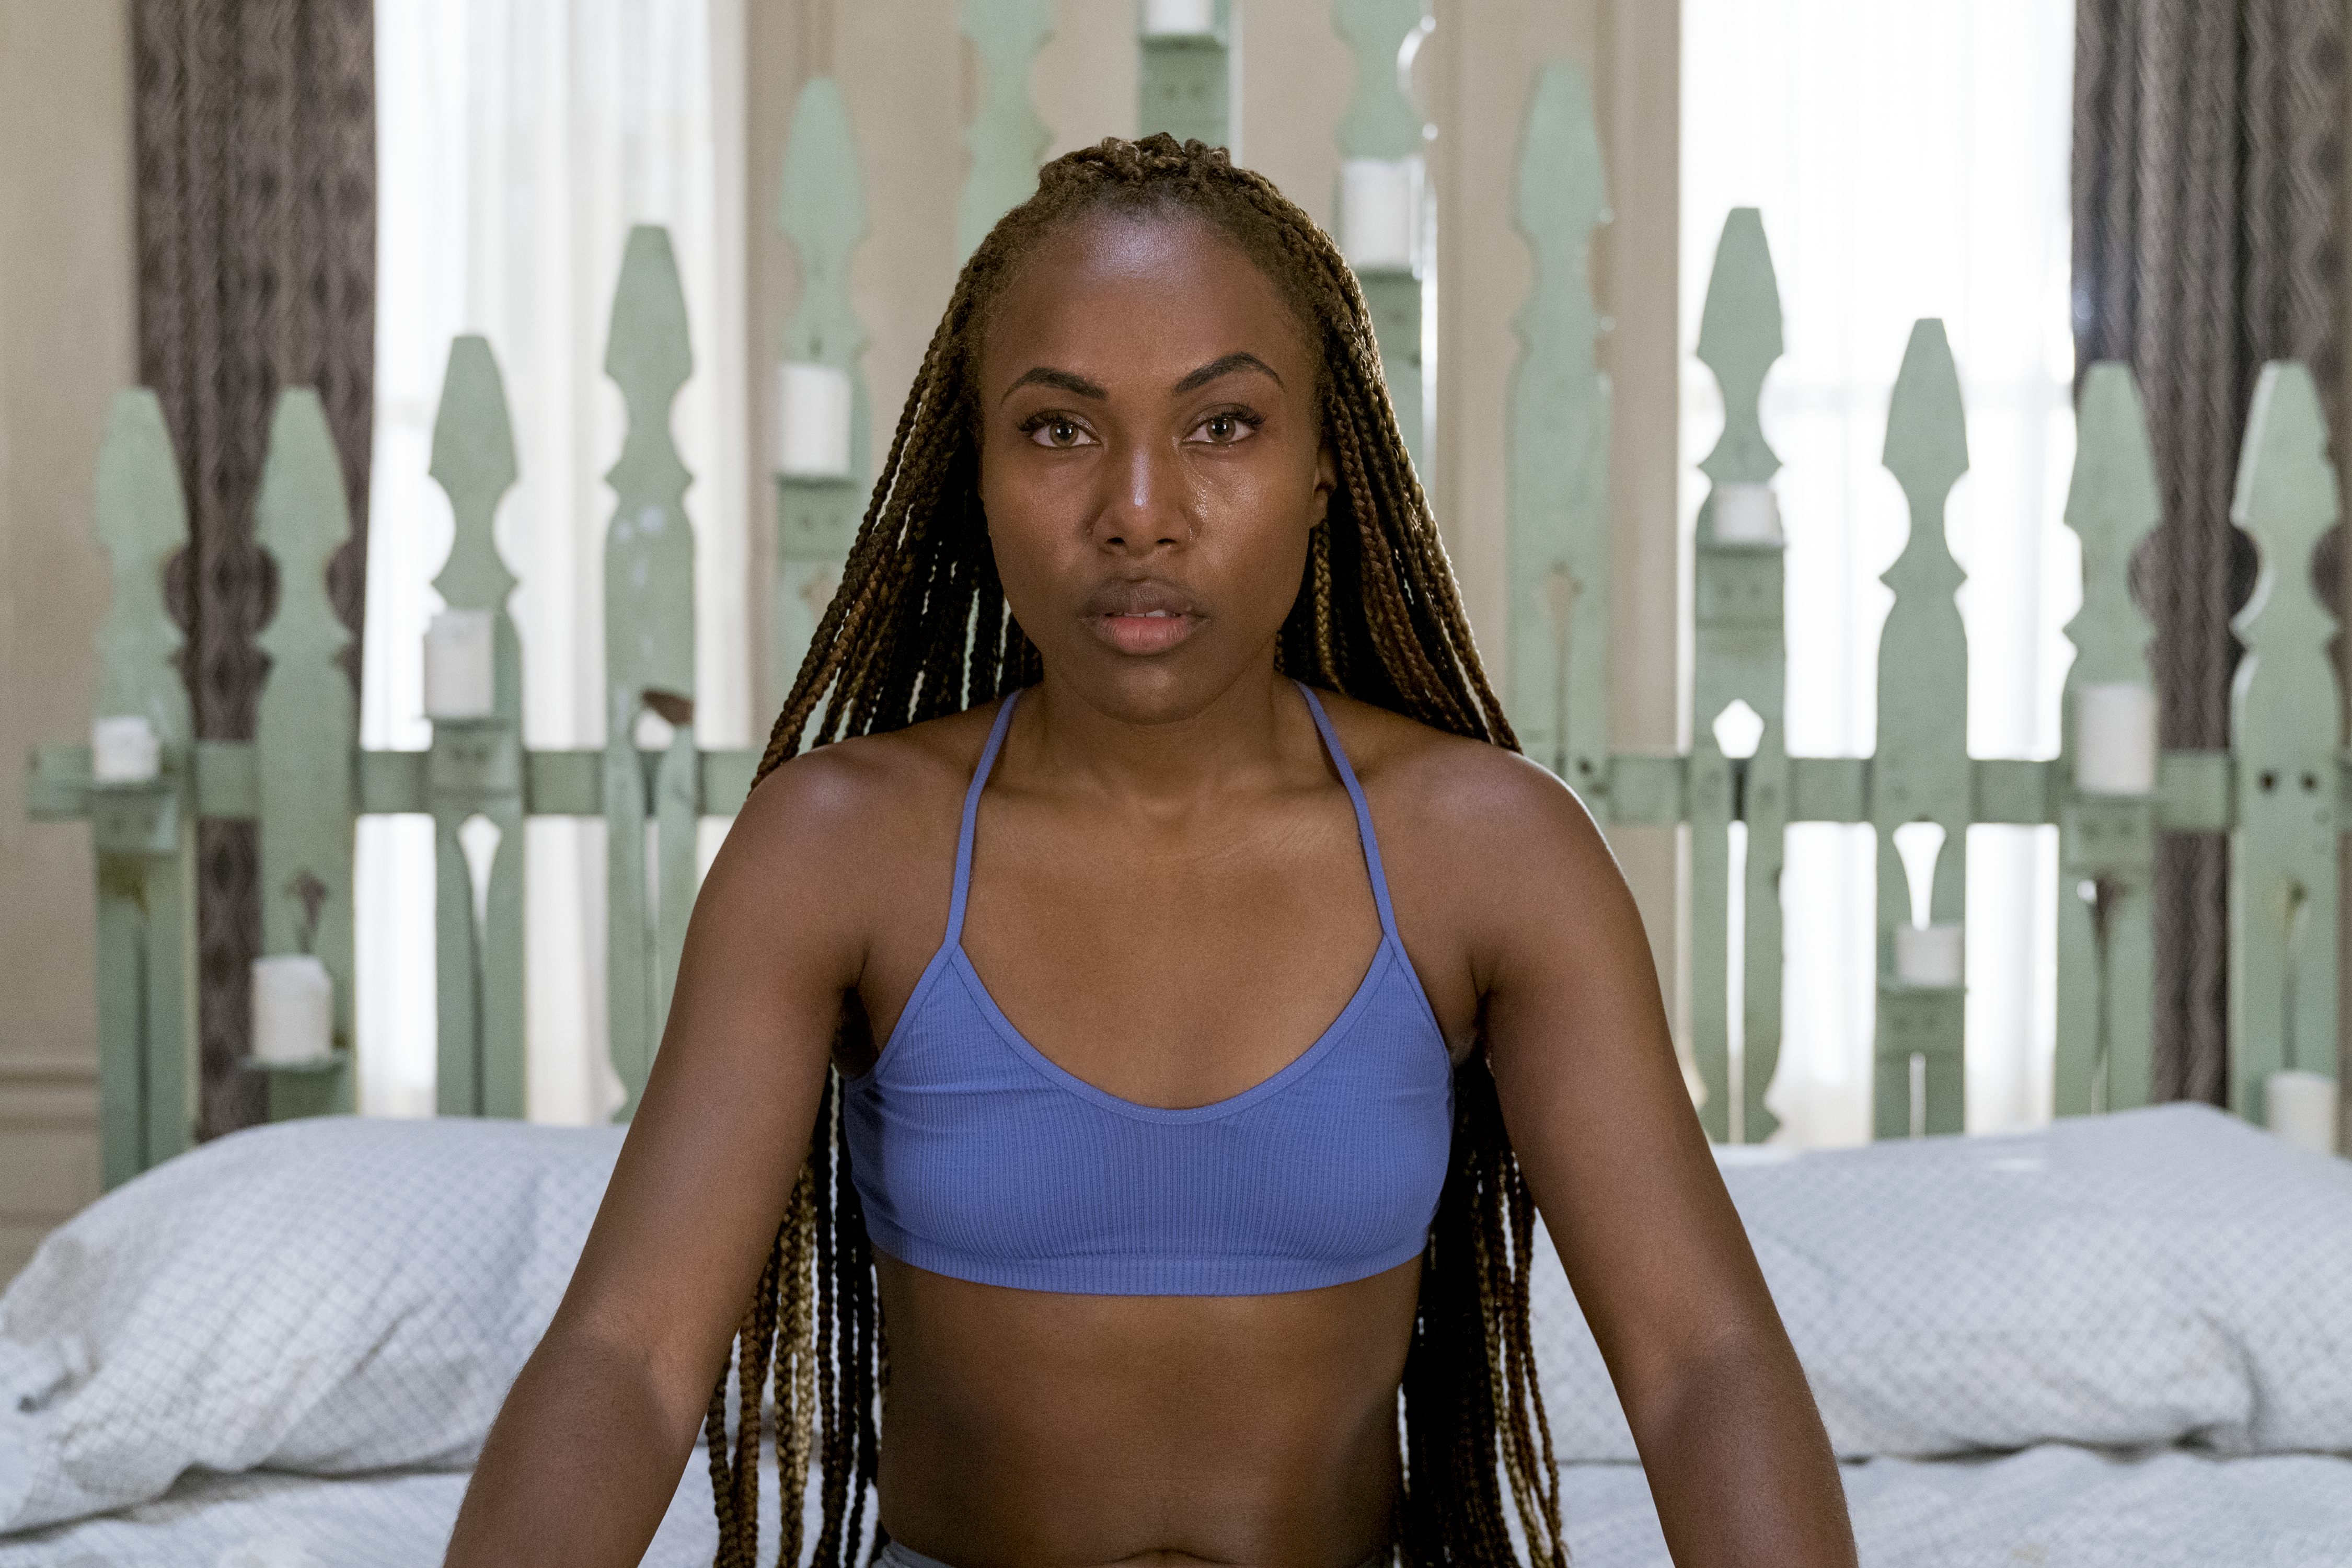 a brownskinned woman with long, brown braids sits on a bed with sad eyes